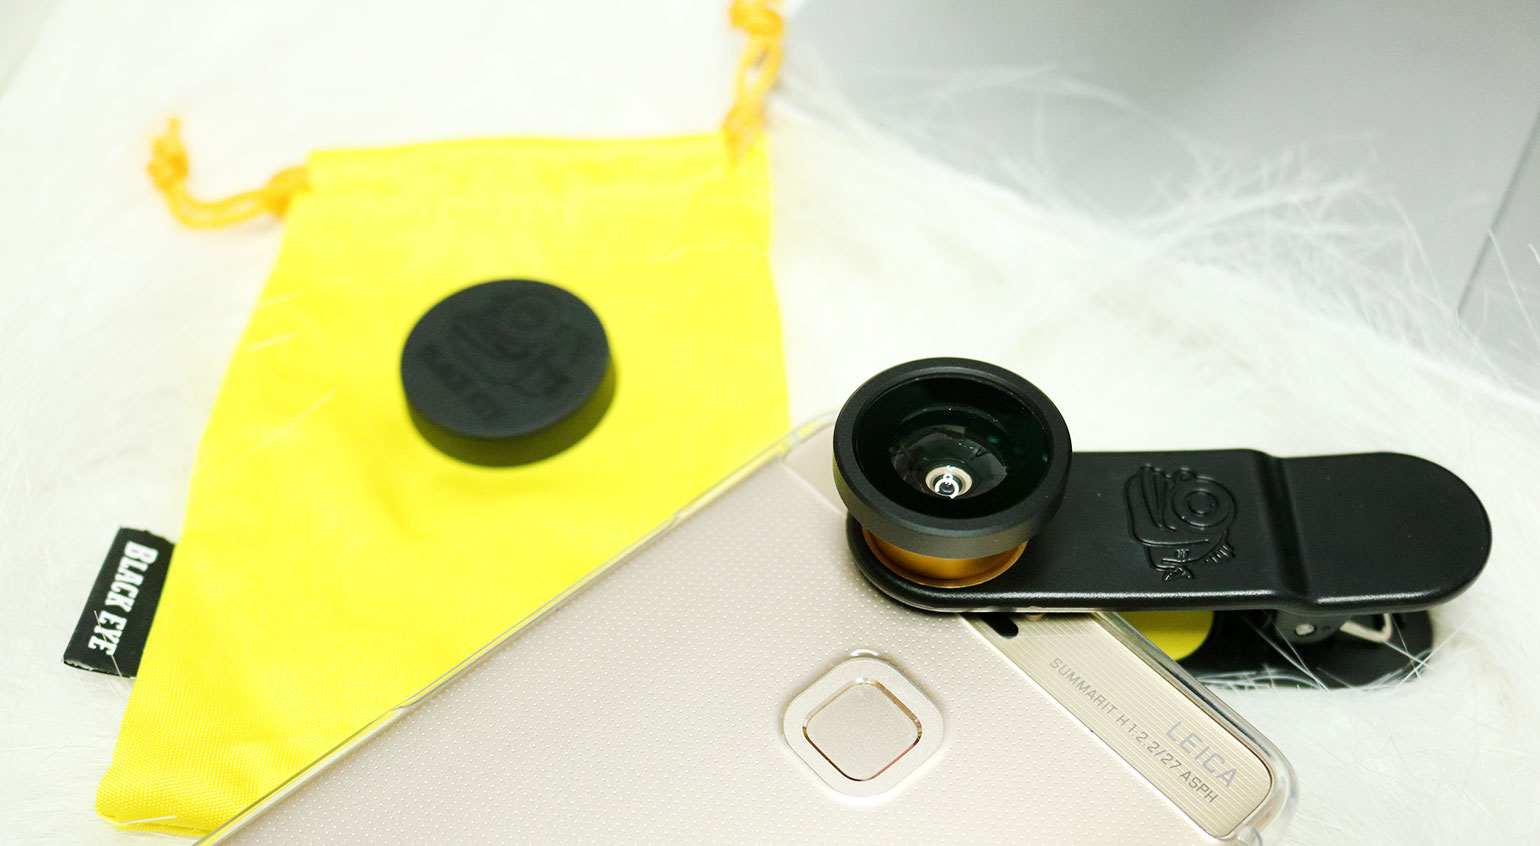 4.1 Digital Walker Products Review - Black Eye Fish Eye lens - Gen-zel.com (c)